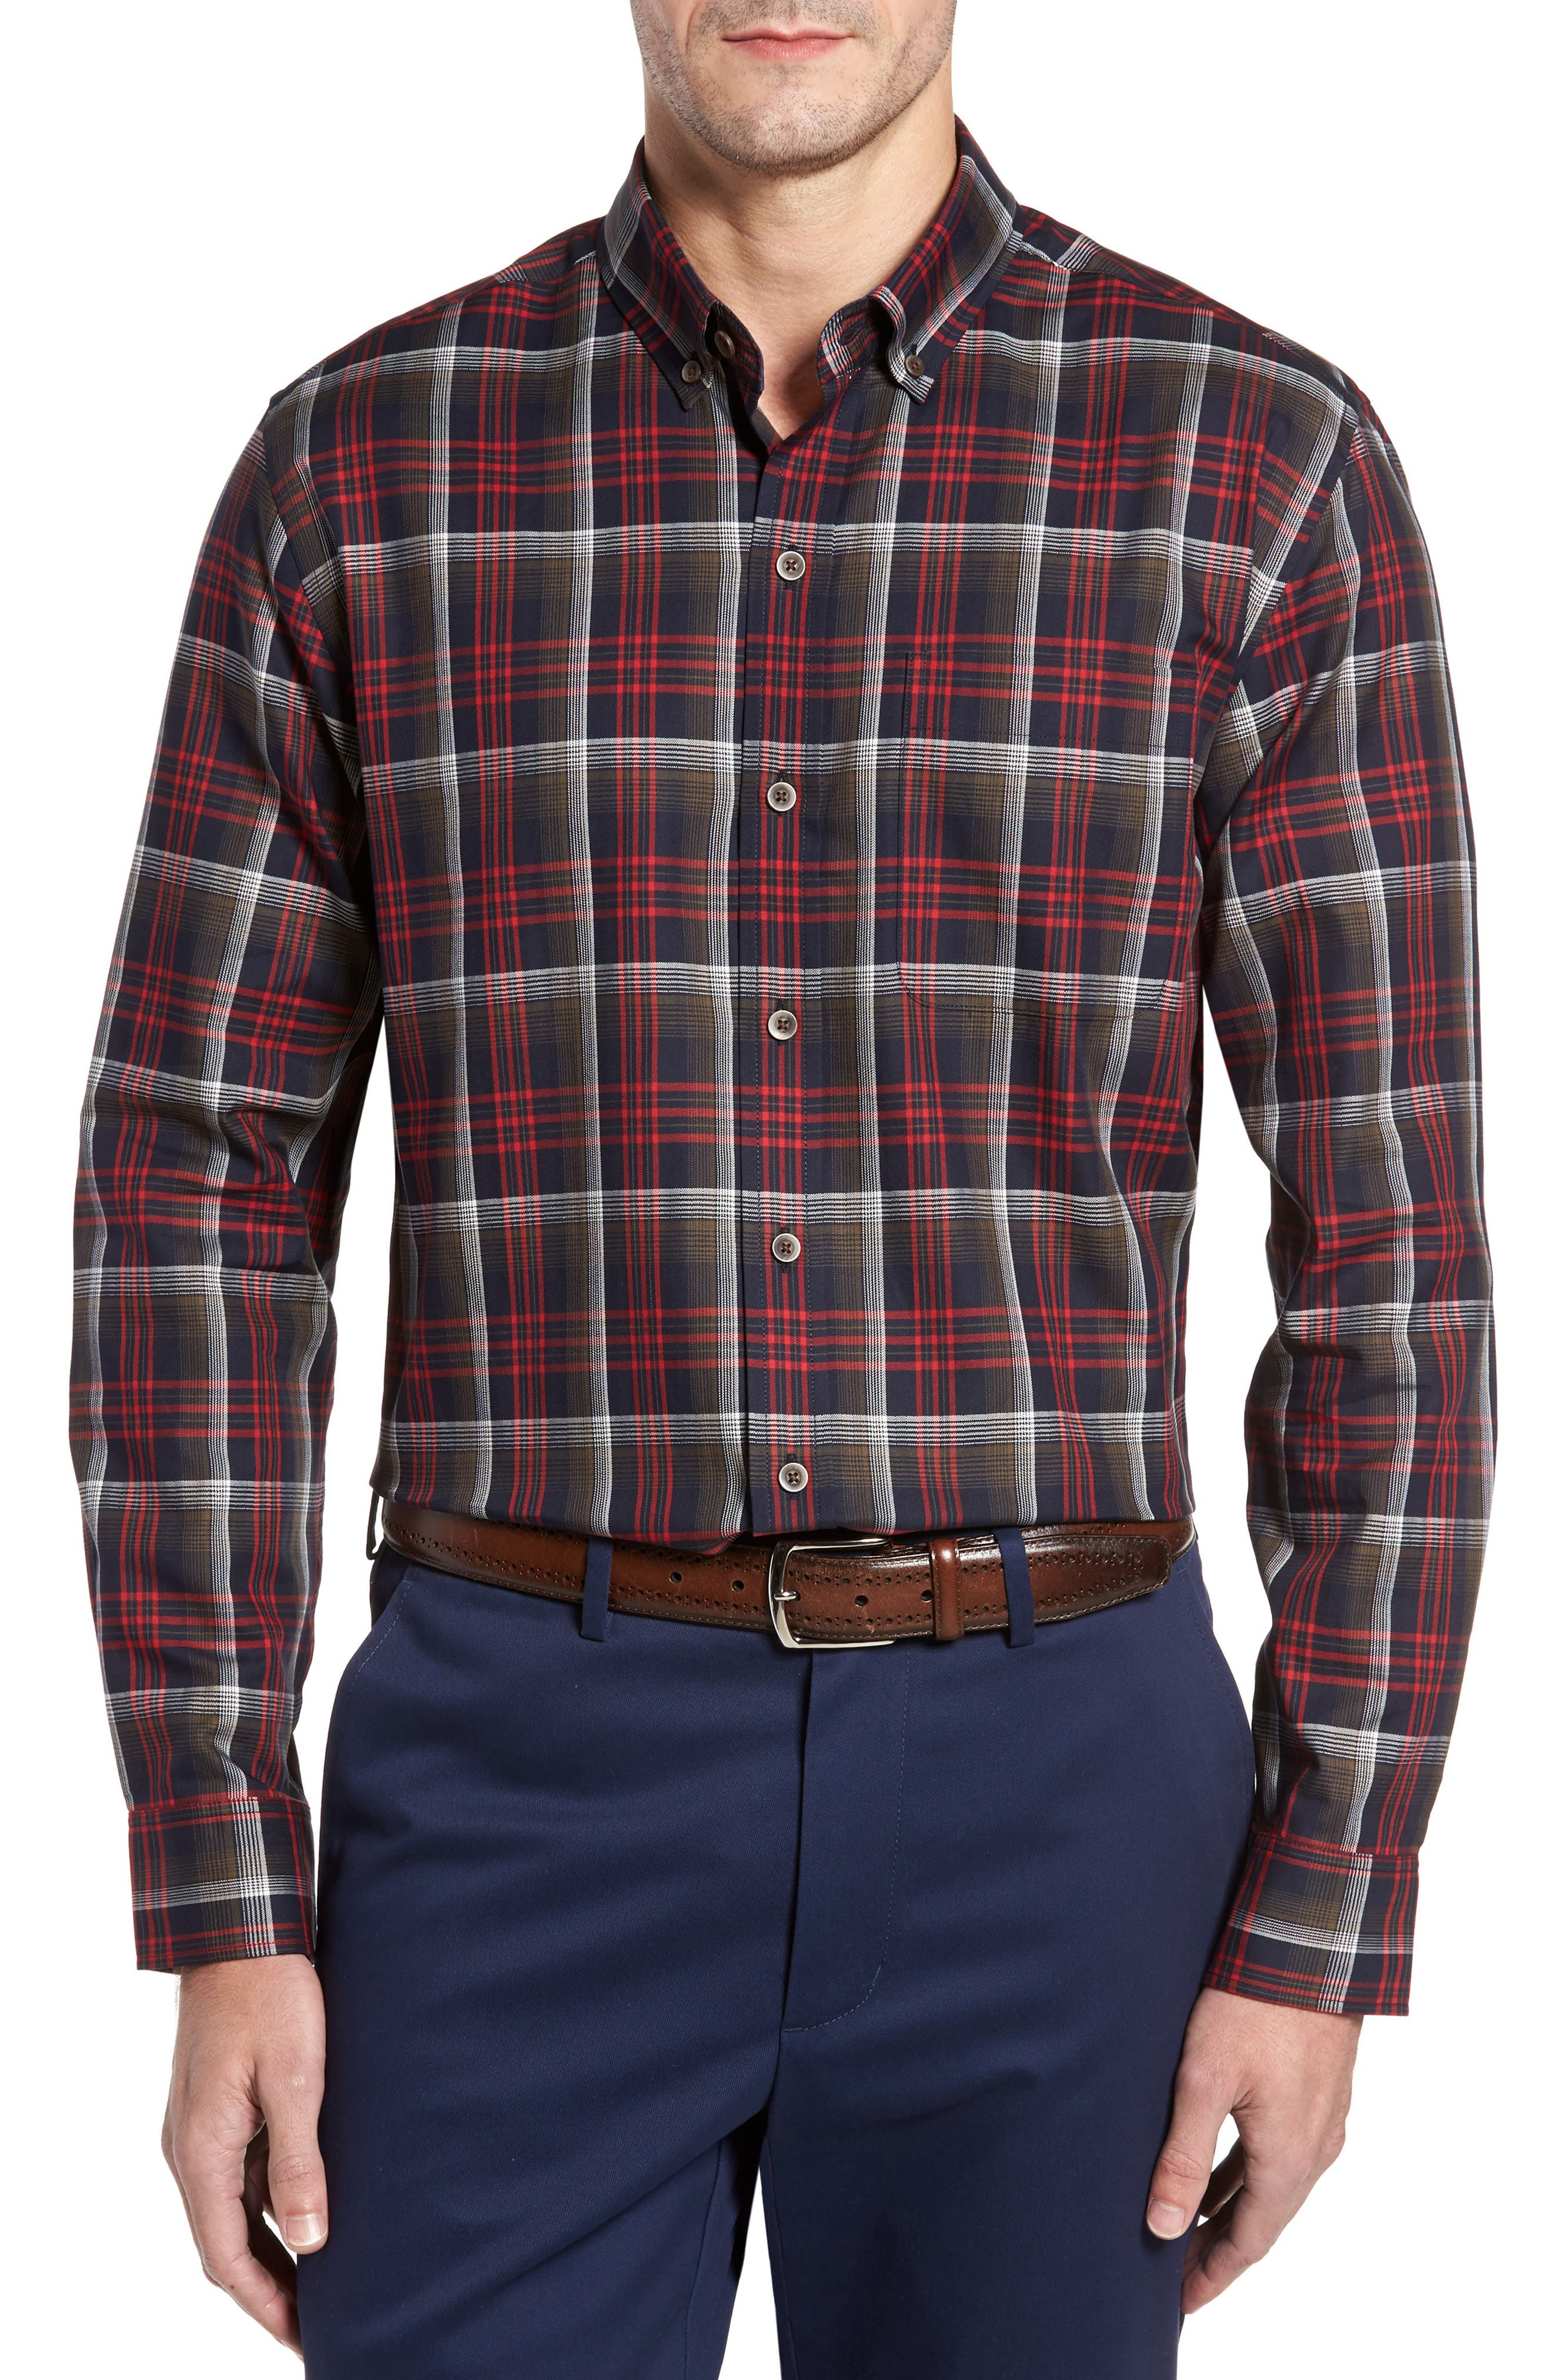 Dry Creek Non-Iron Plaid Sport Shirt,                             Main thumbnail 1, color,                             622